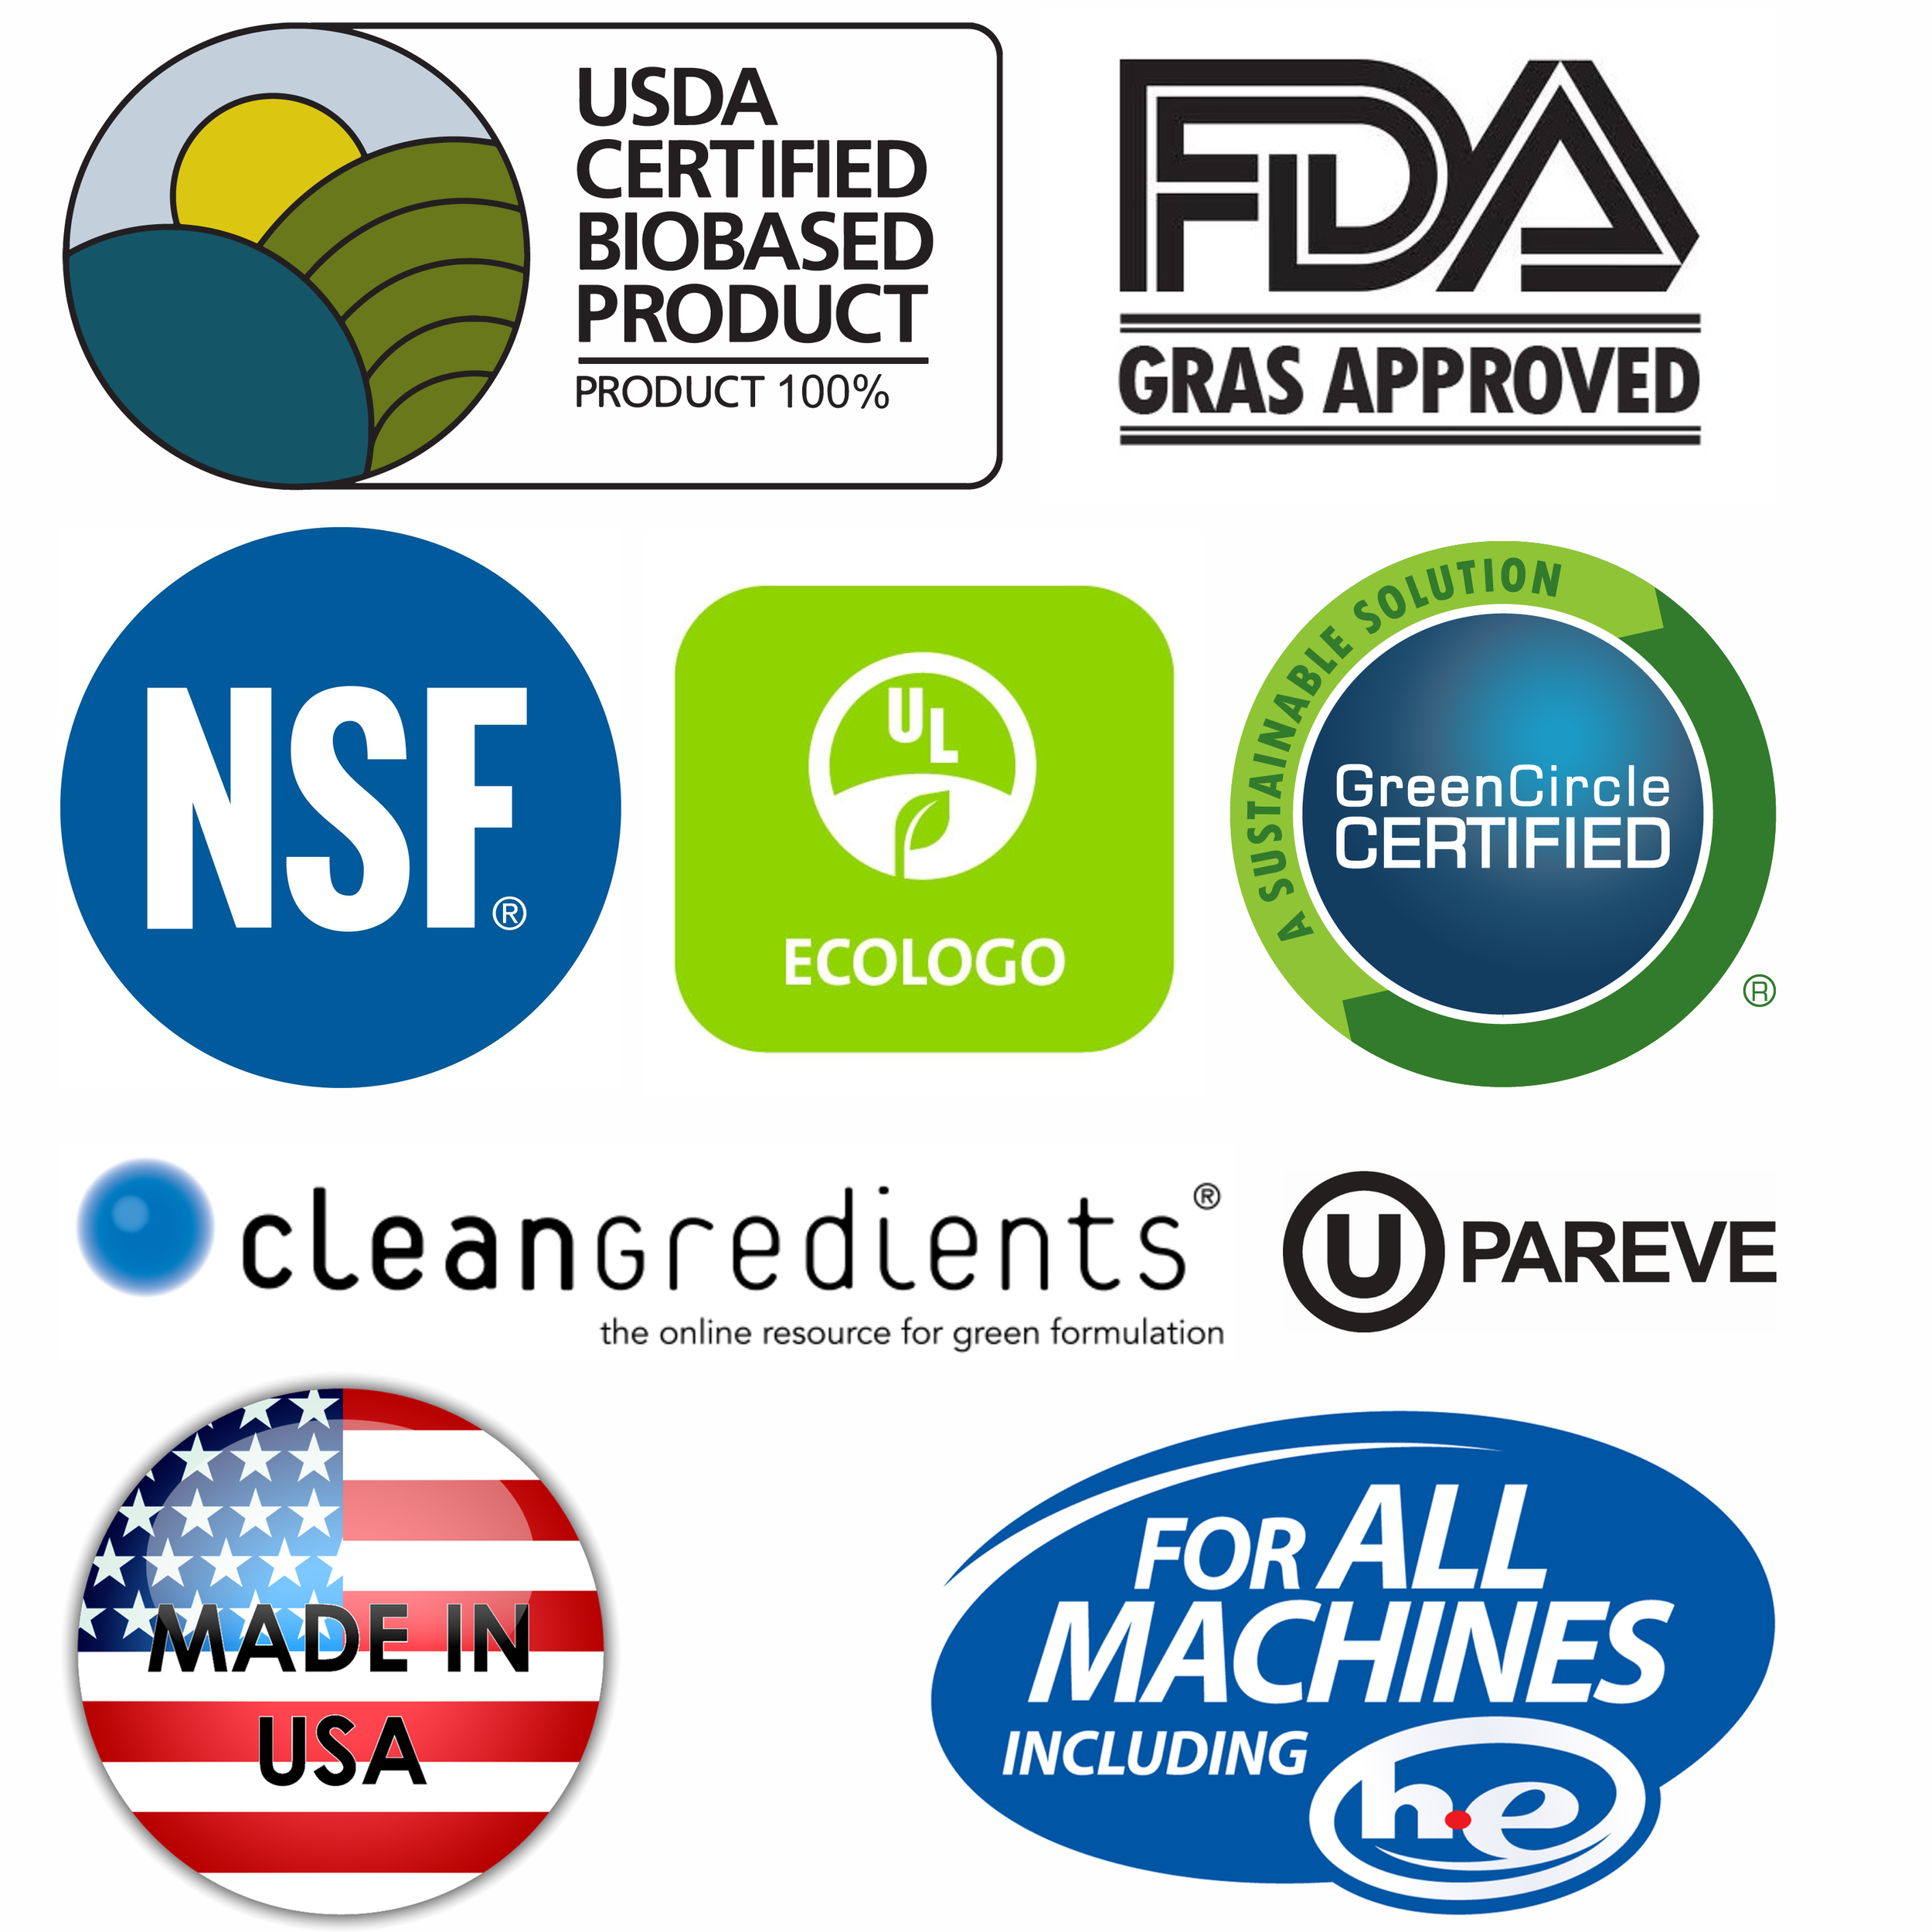 truSpring products are certified safe & made in USA.